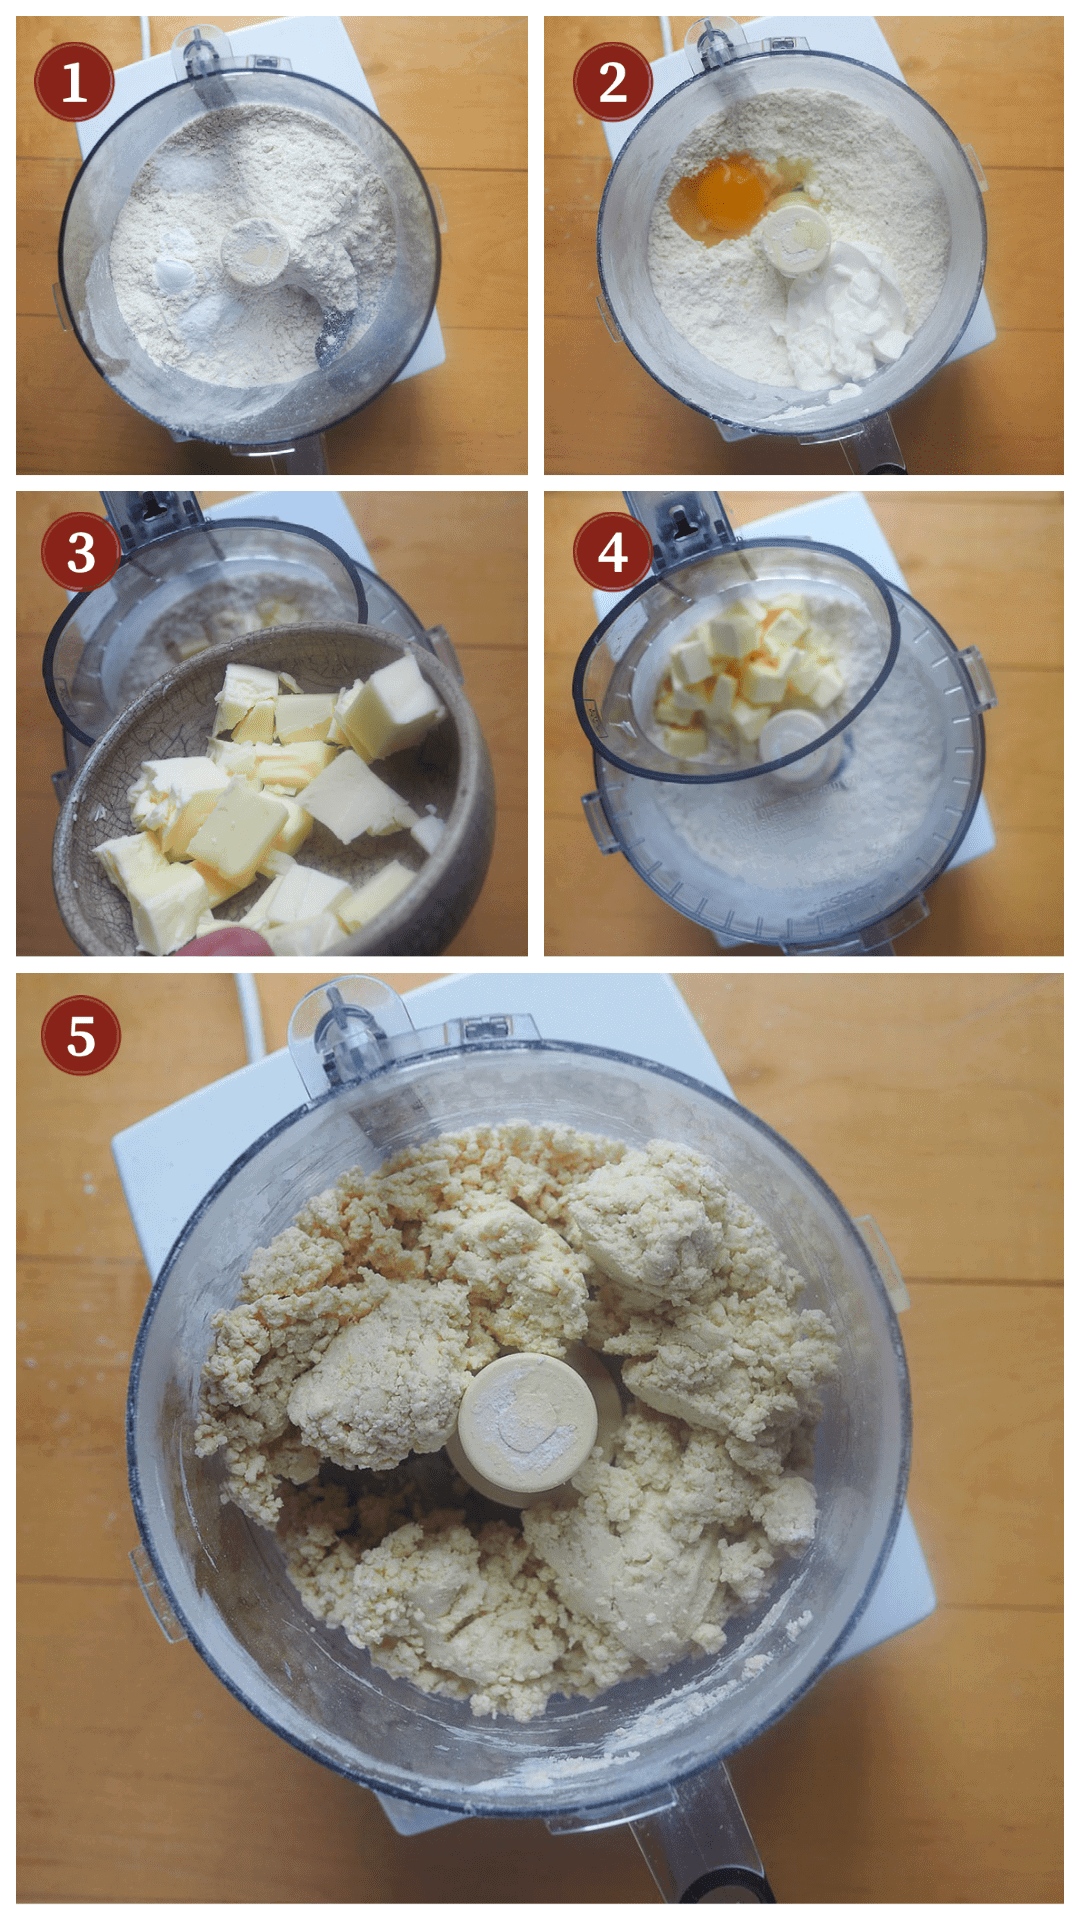 A collage of images showing how to make scones, steps 1 - 5.